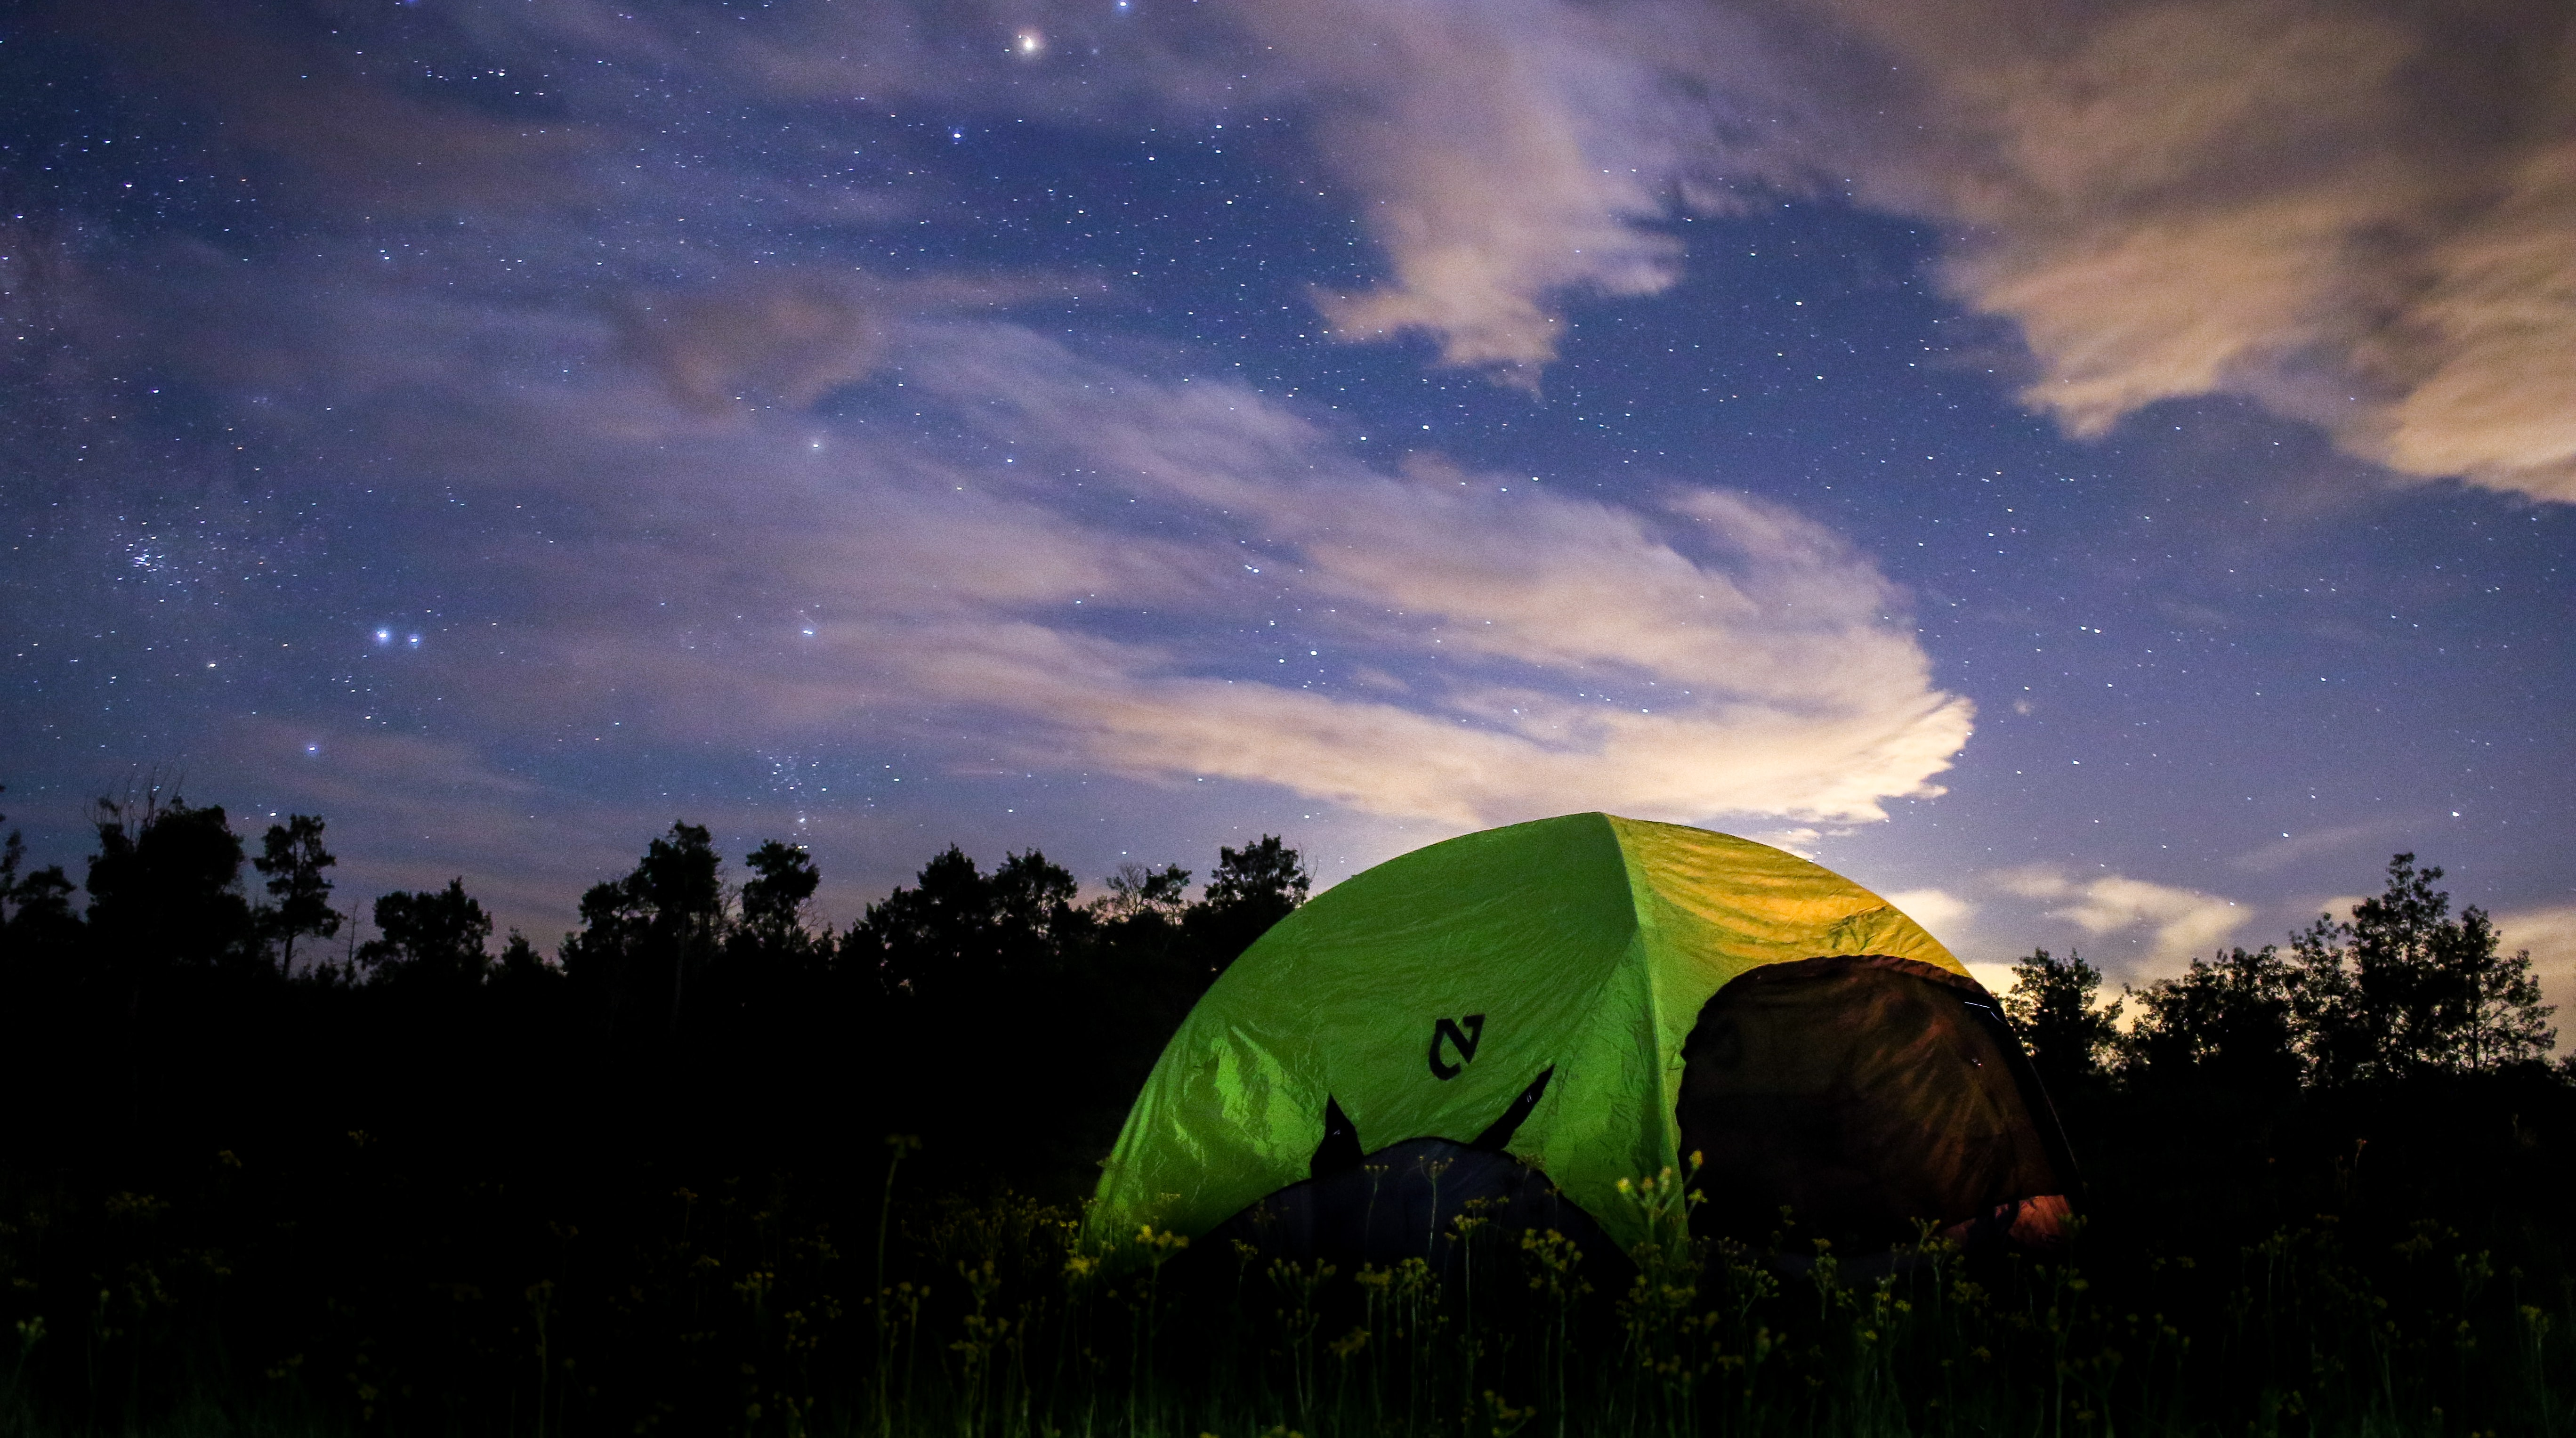 A green tent in a field under a starry sky with fluffy clouds